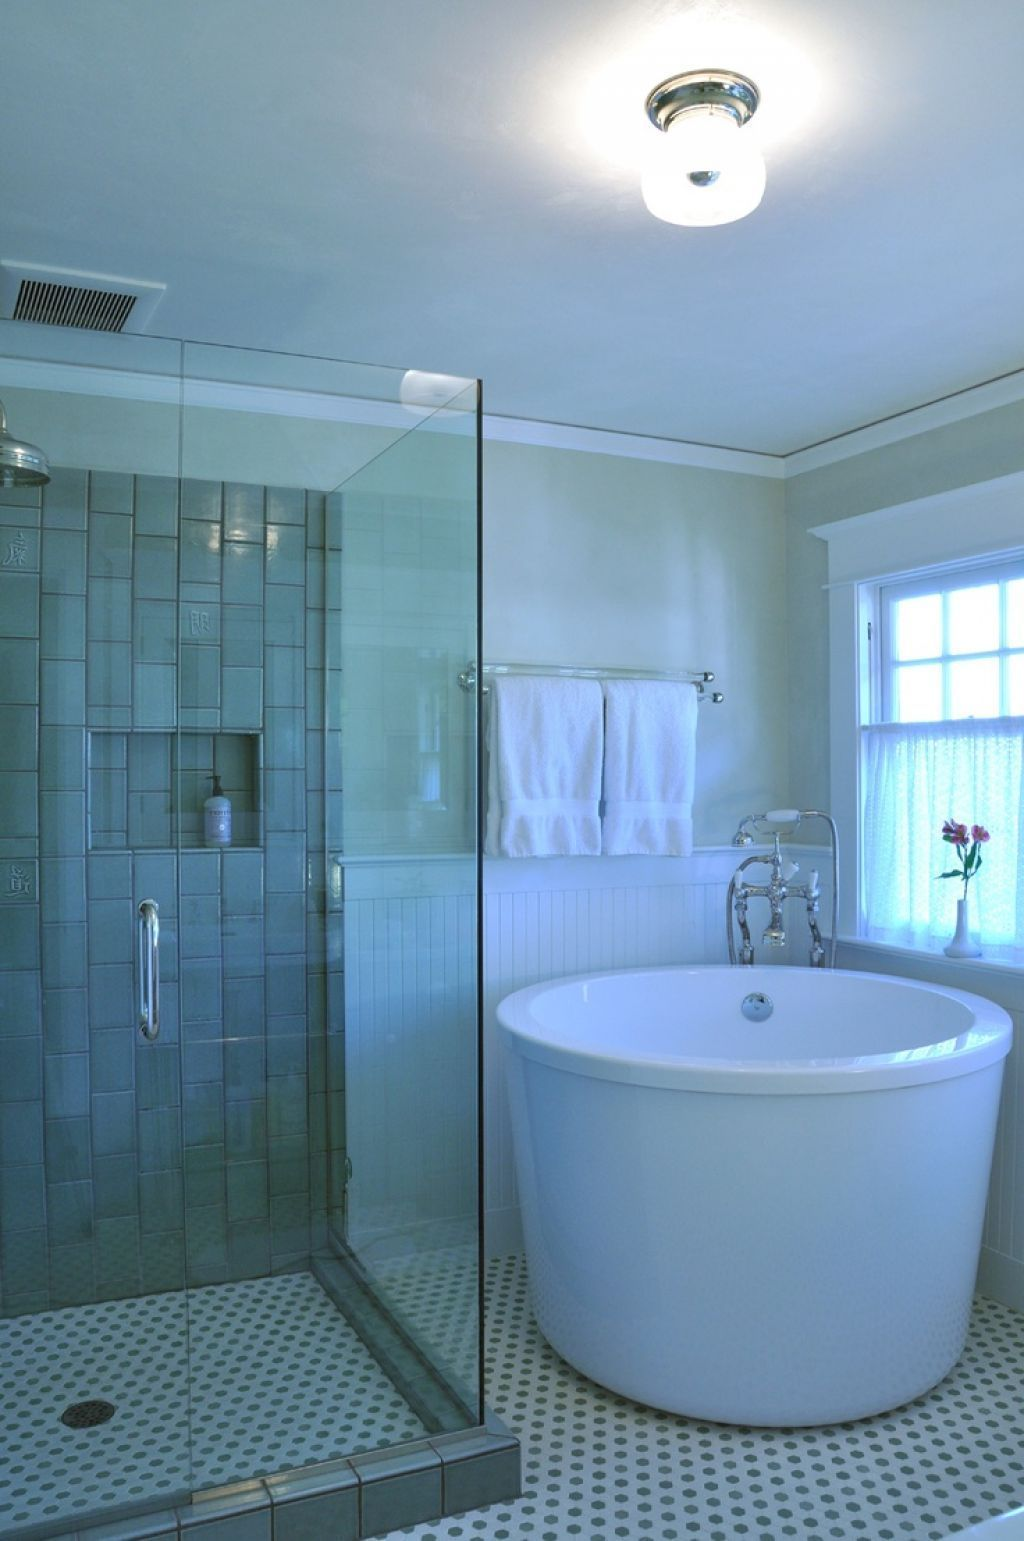 21 Japanese Tubs That Bring The Ultimate Comfort Bathtub Remodel - Bathtub Shower Combo For Small Spaces